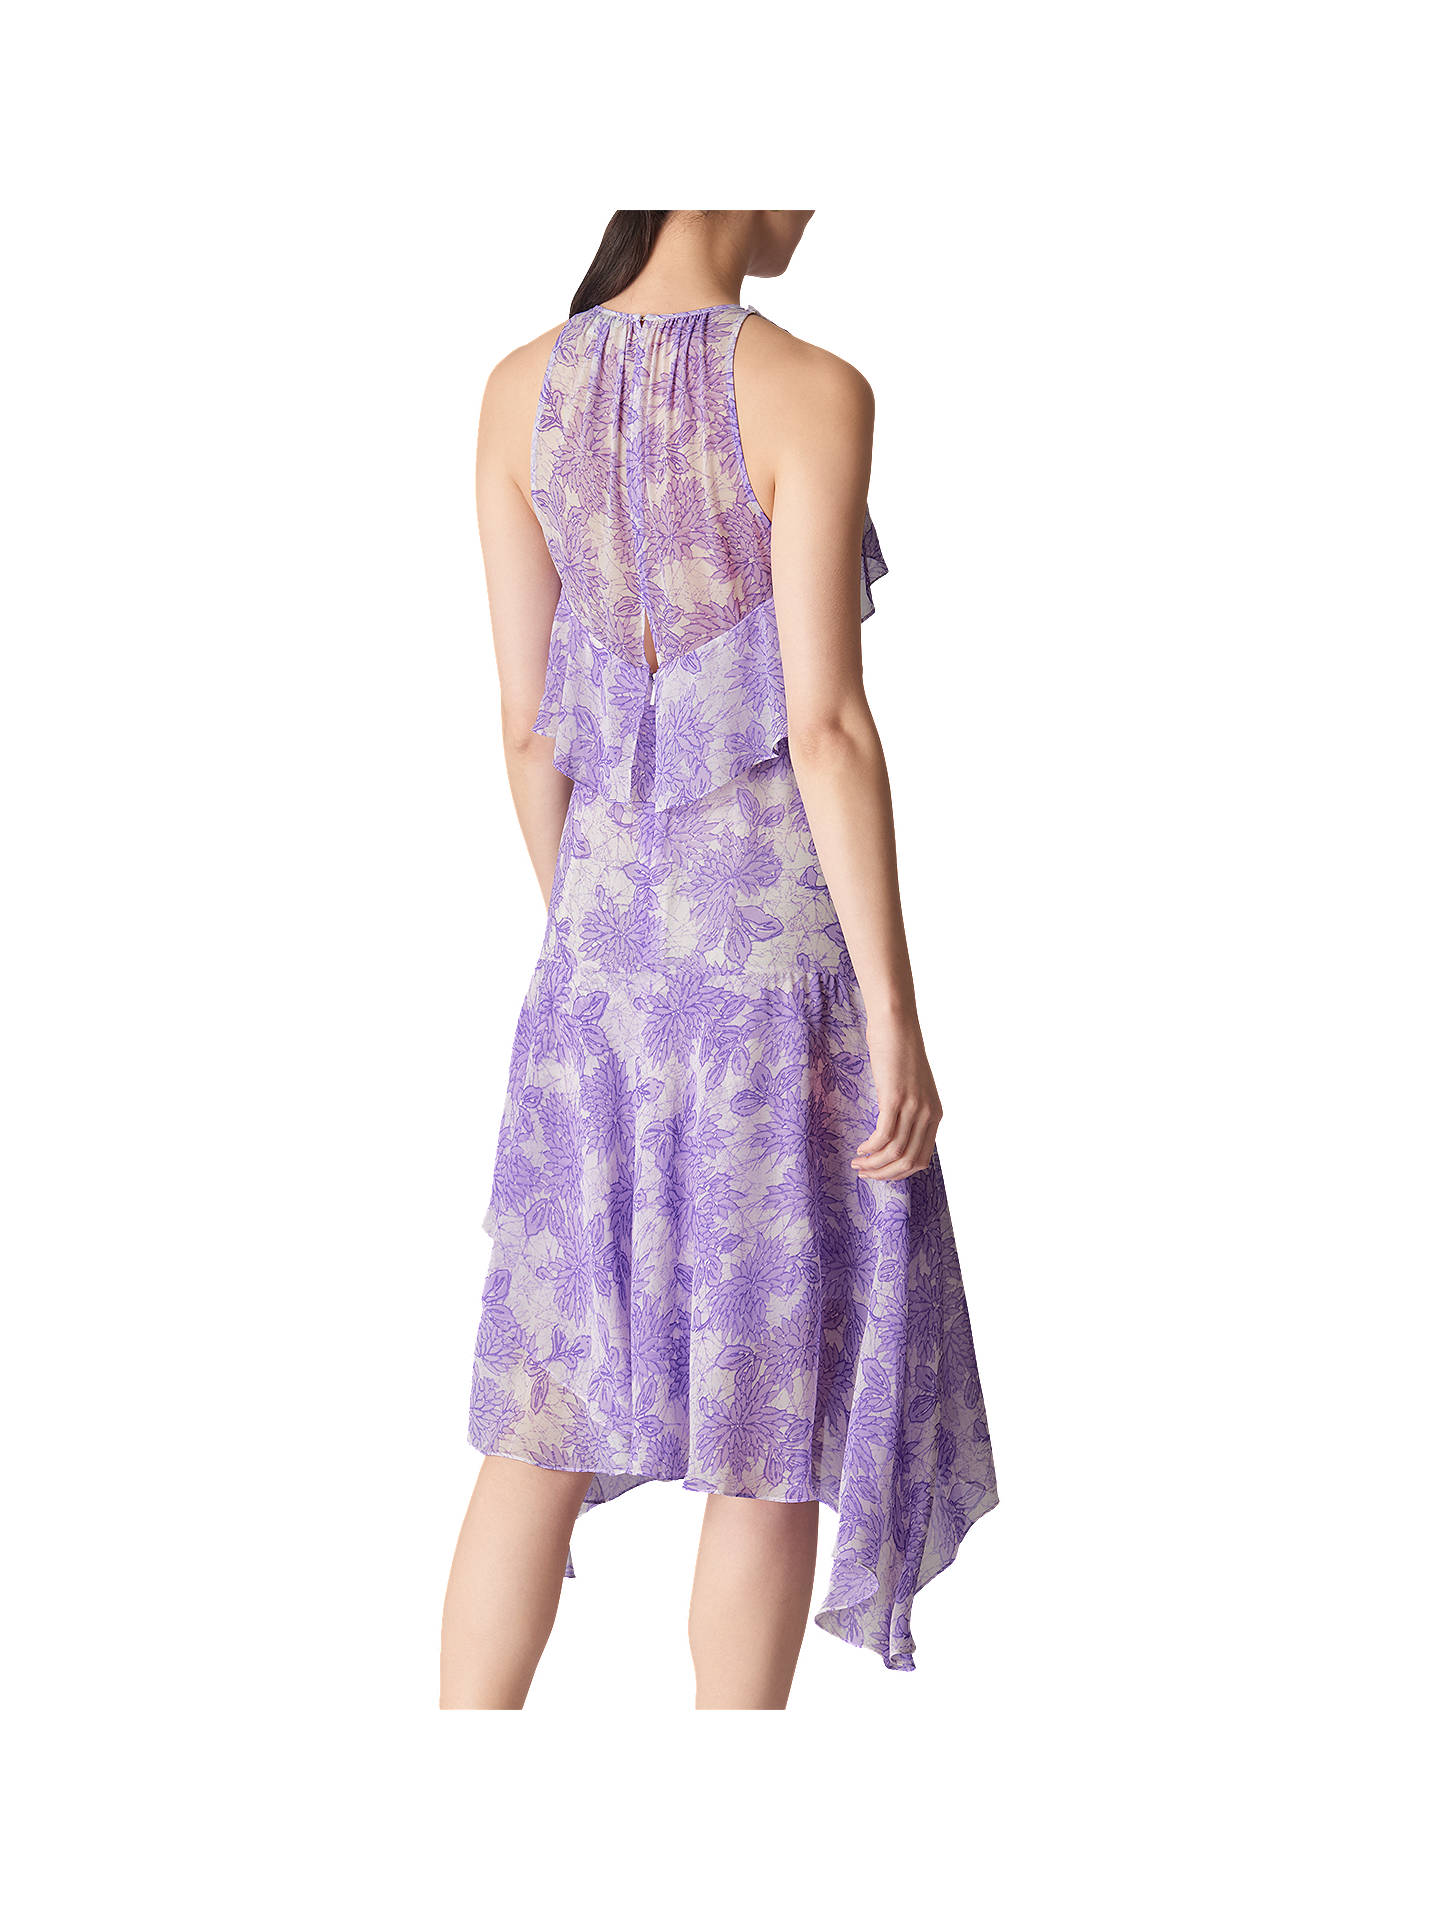 BuyWhistles Anne Floral Print Dress, Lilac, 14 Online at johnlewis.com